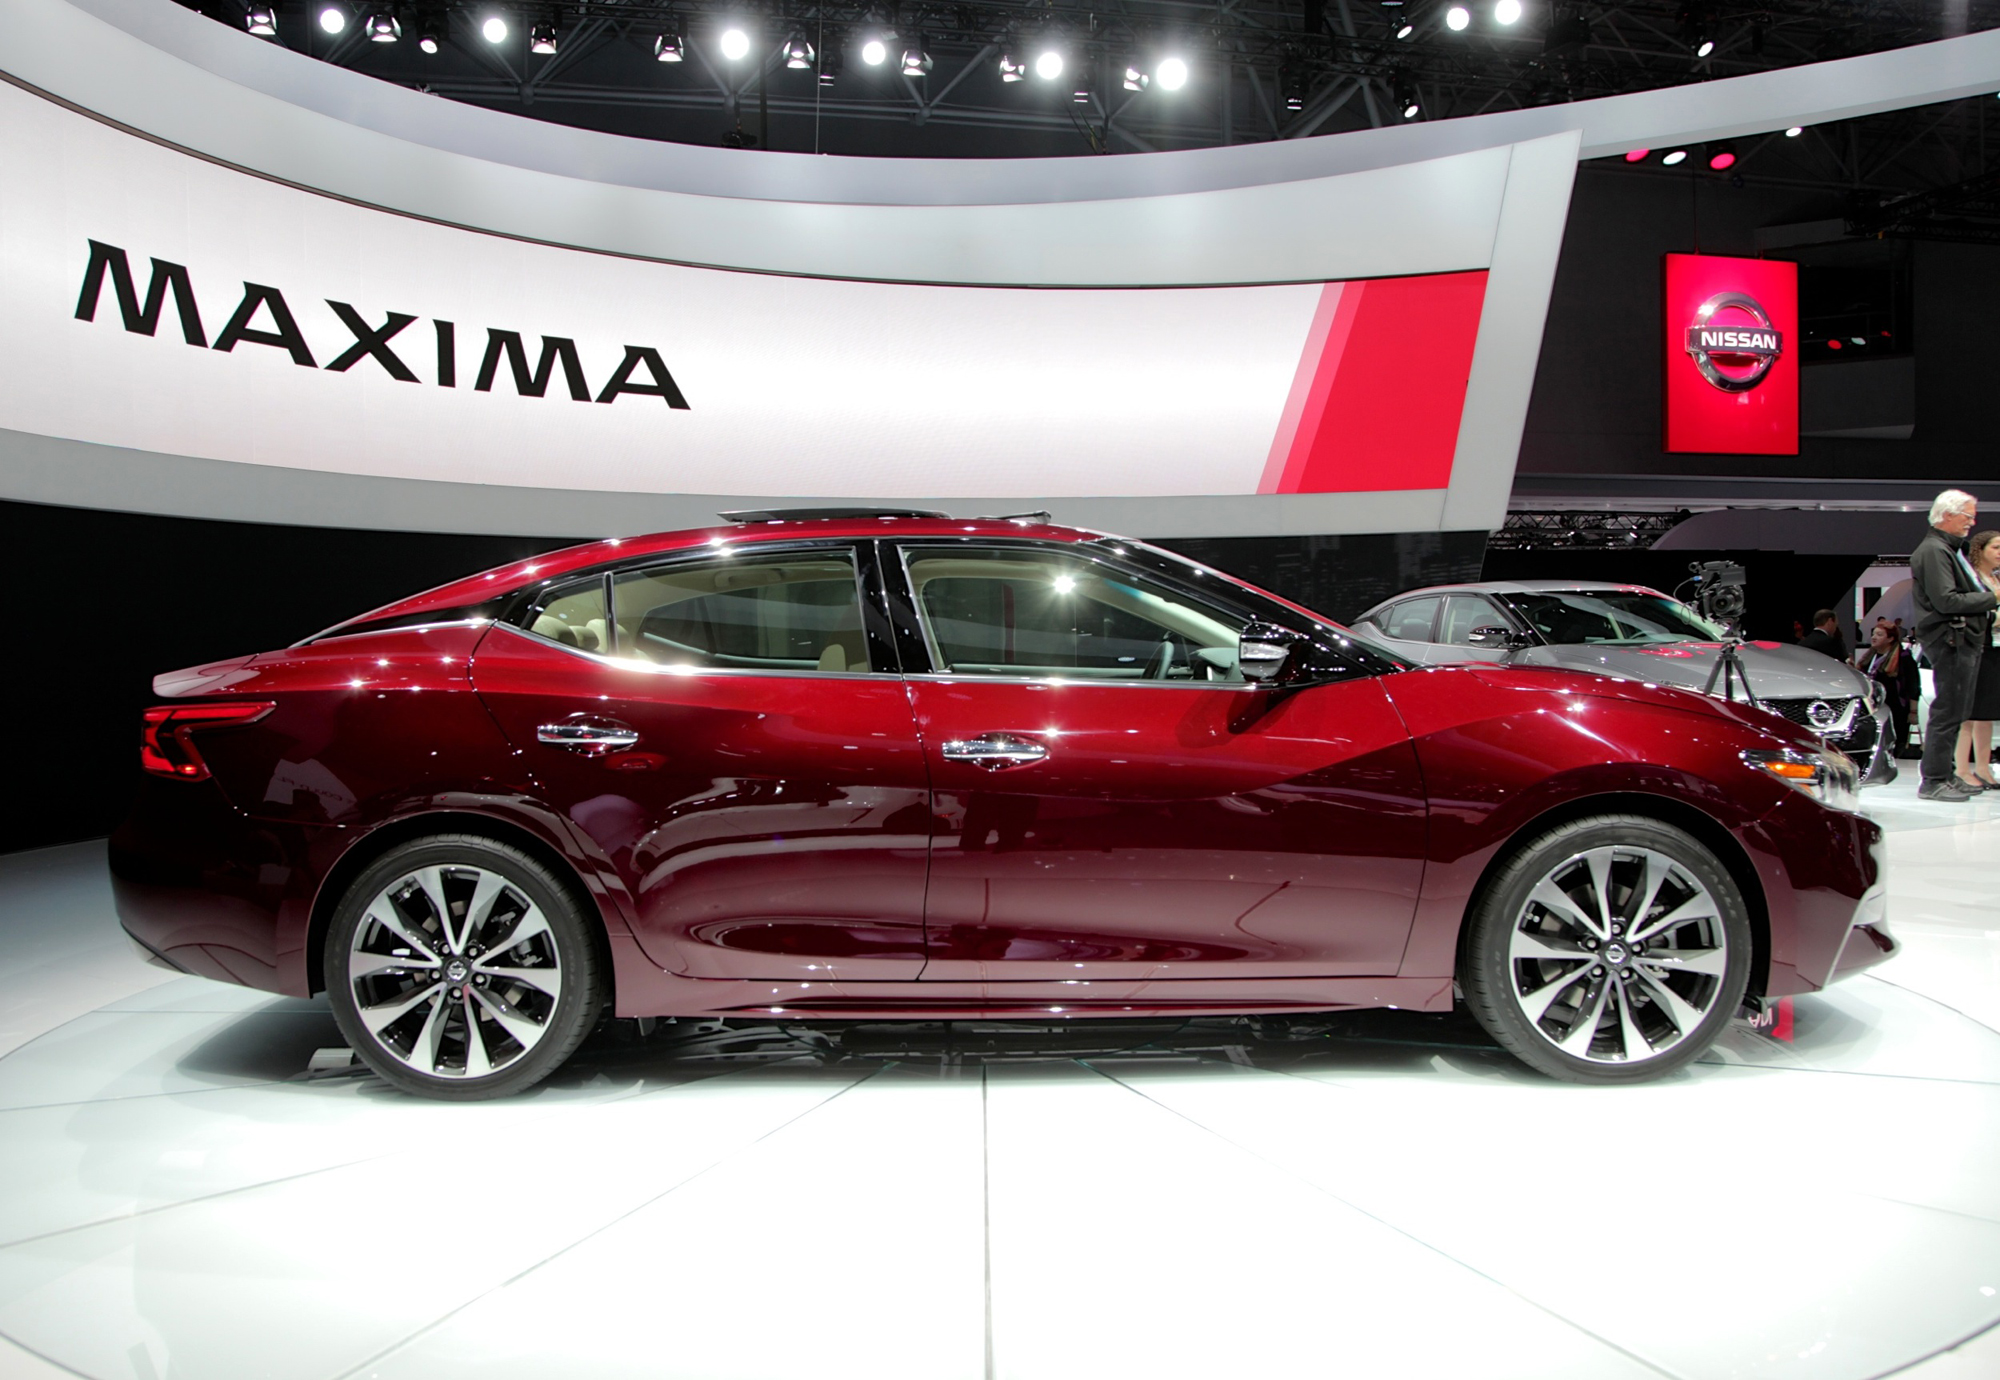 2016 nissan maxima video first look news. Black Bedroom Furniture Sets. Home Design Ideas